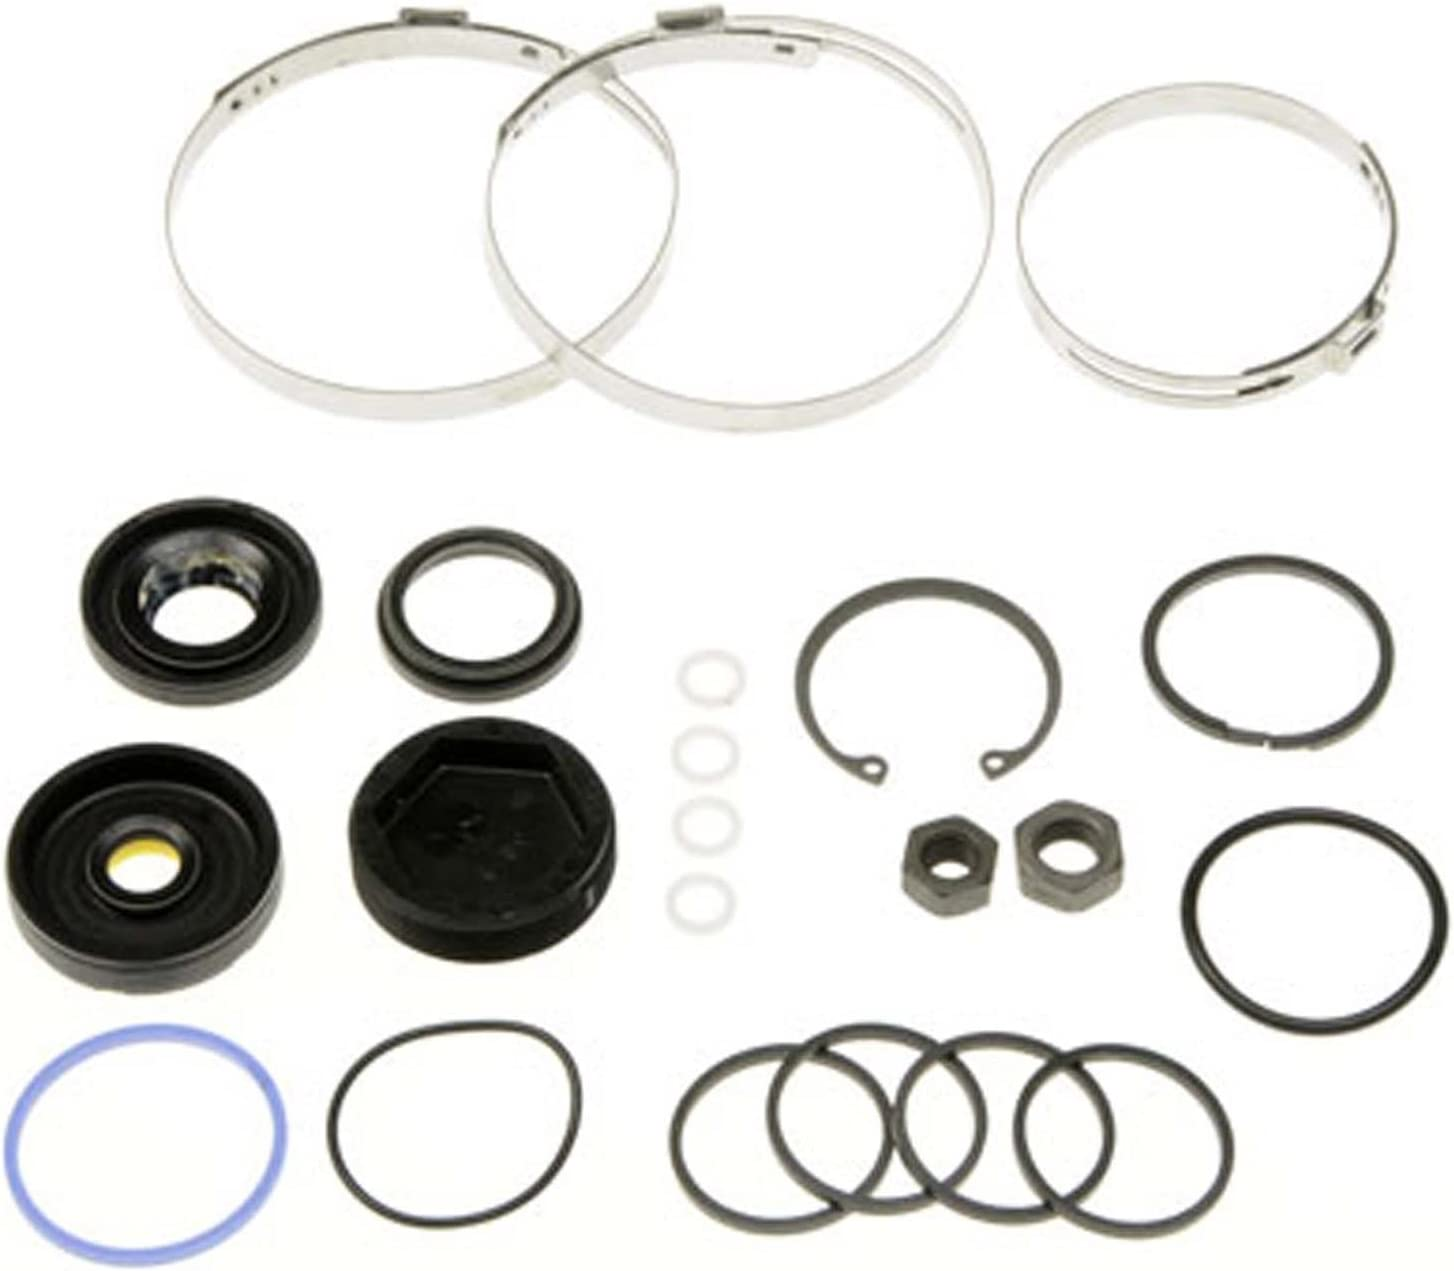 Power Steering Rack and Pinion Seal Kit for Chrysler 300M Power Steering Seals